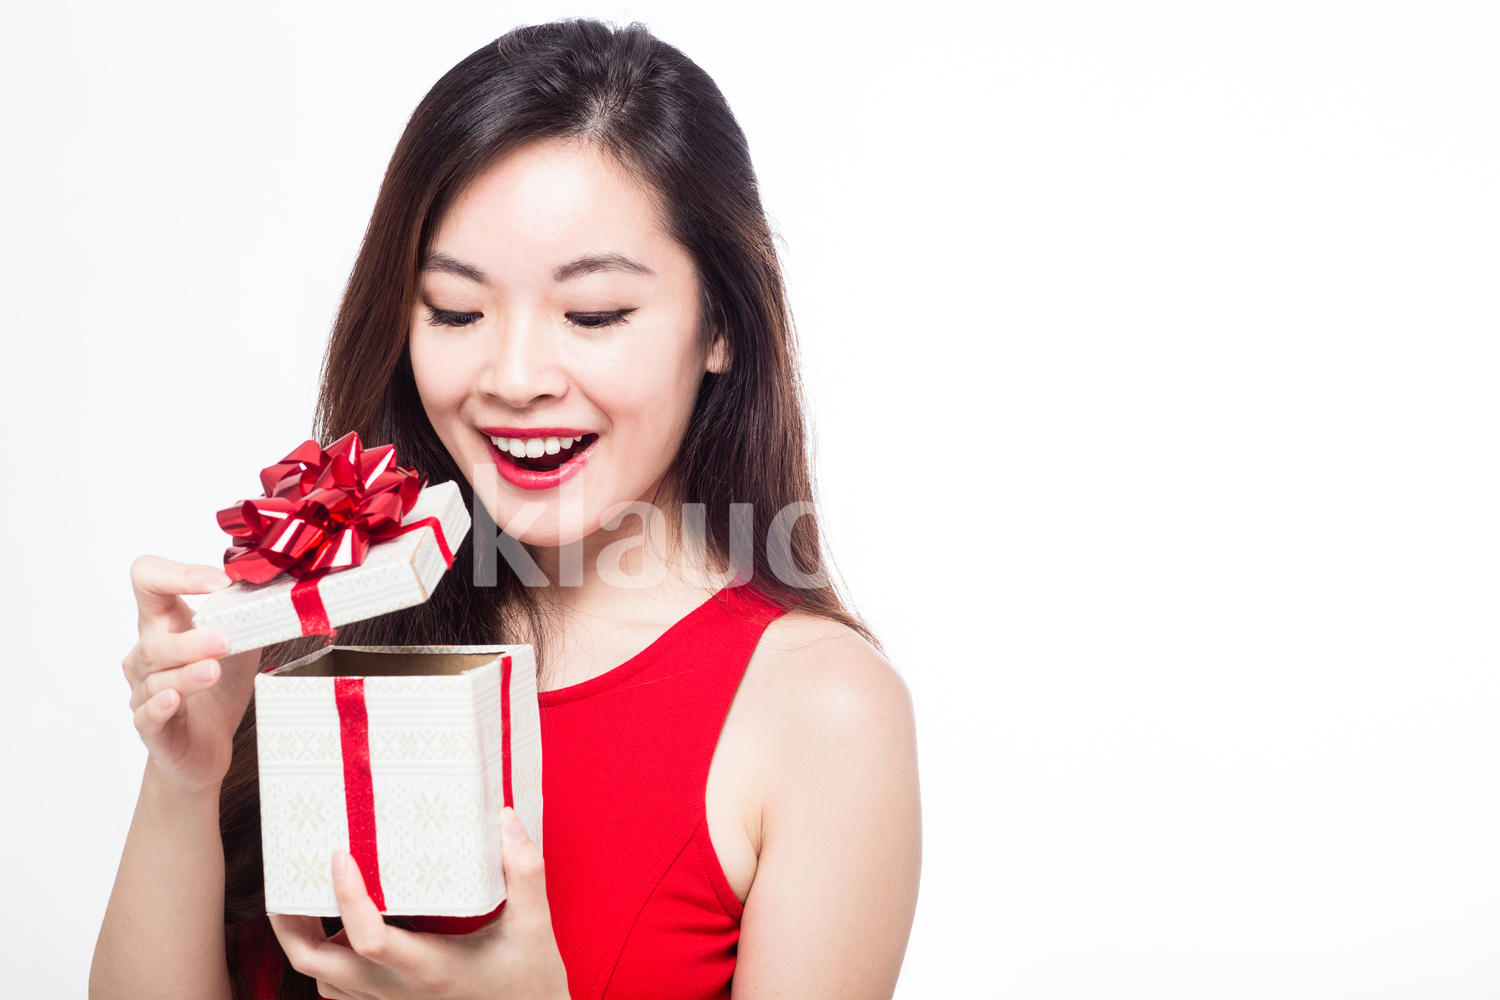 Pan Asian woman opening her gift box